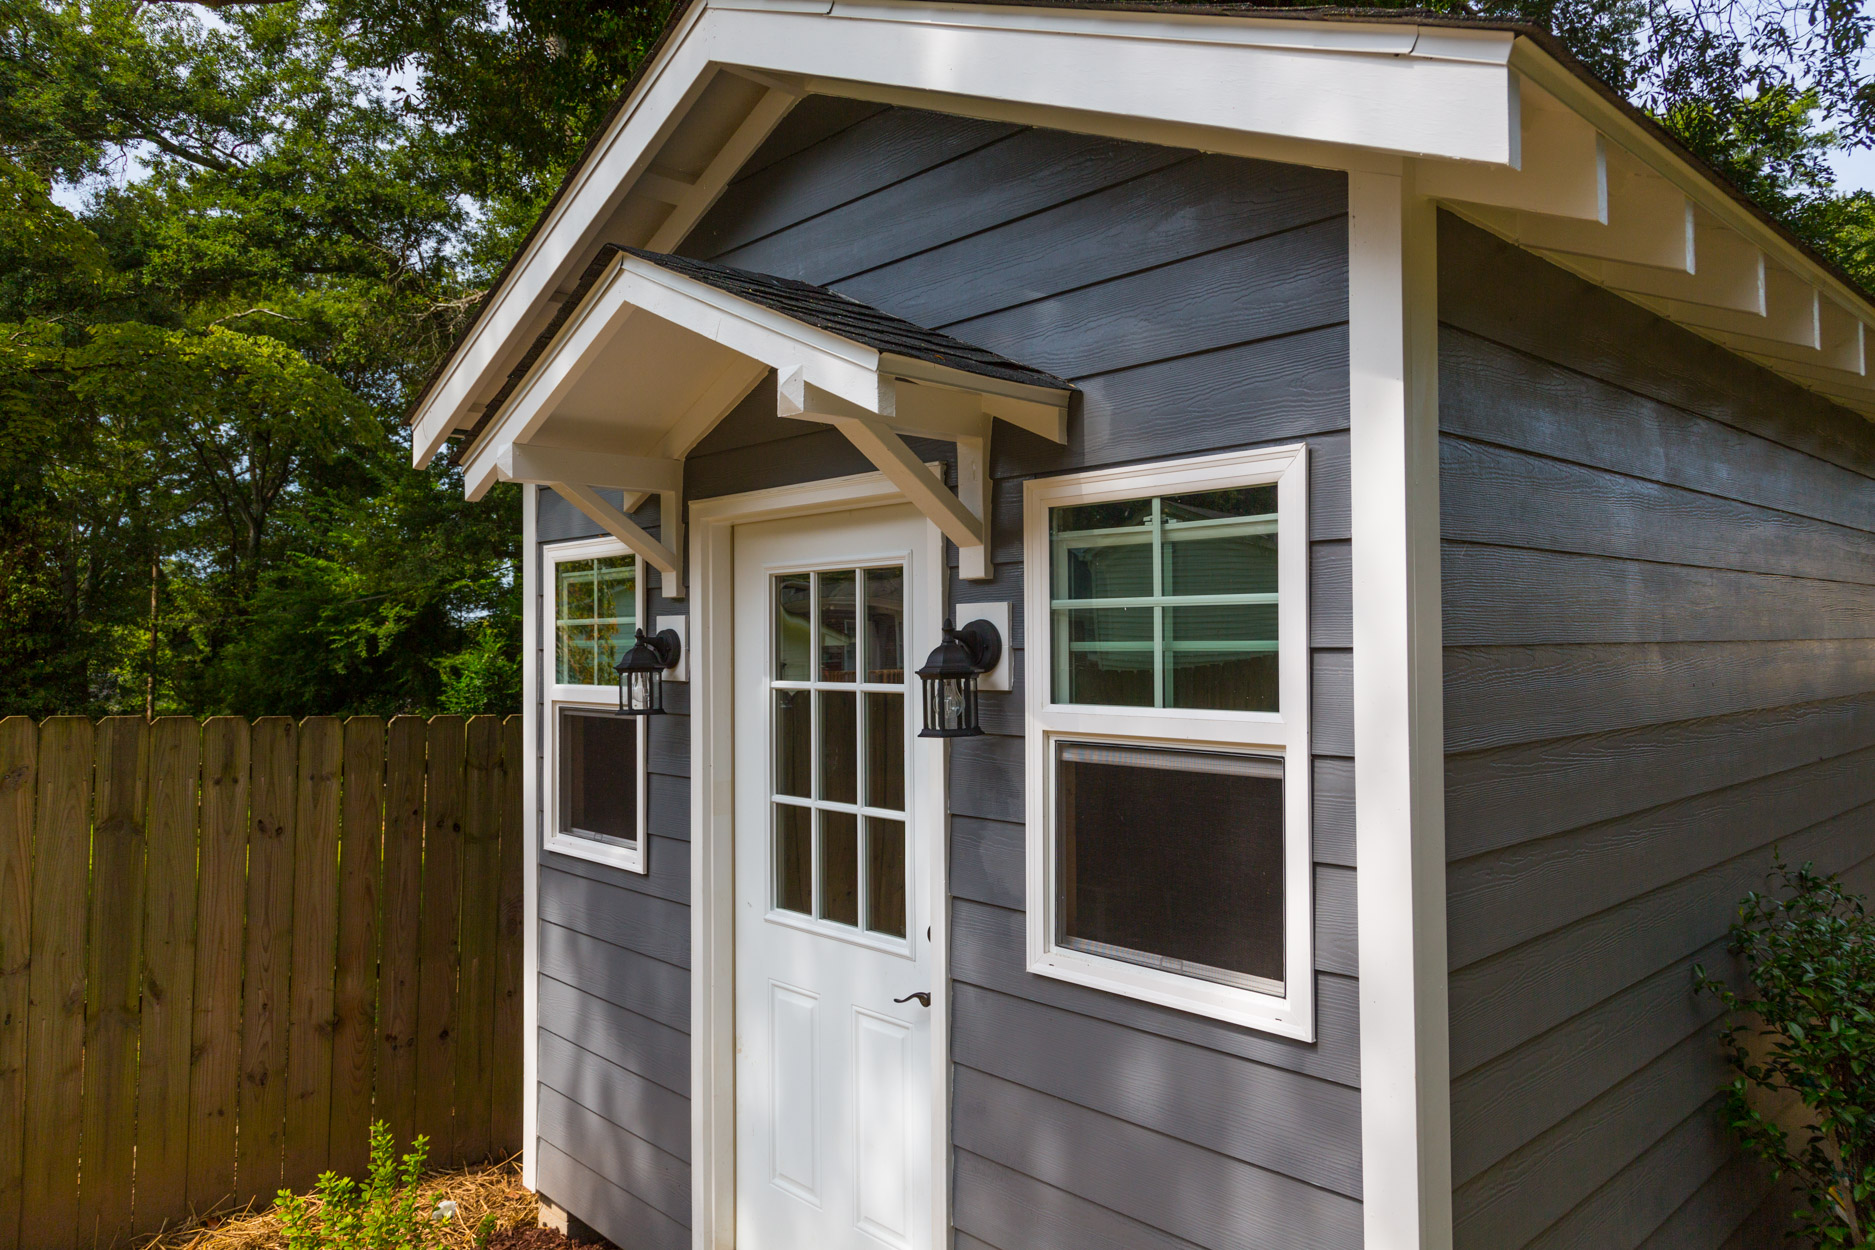 This Craftsman Style Storage Shed Was Built To Customer Specifications Including Custom Shelving And Electricity Which S The Refrigerator Lighting